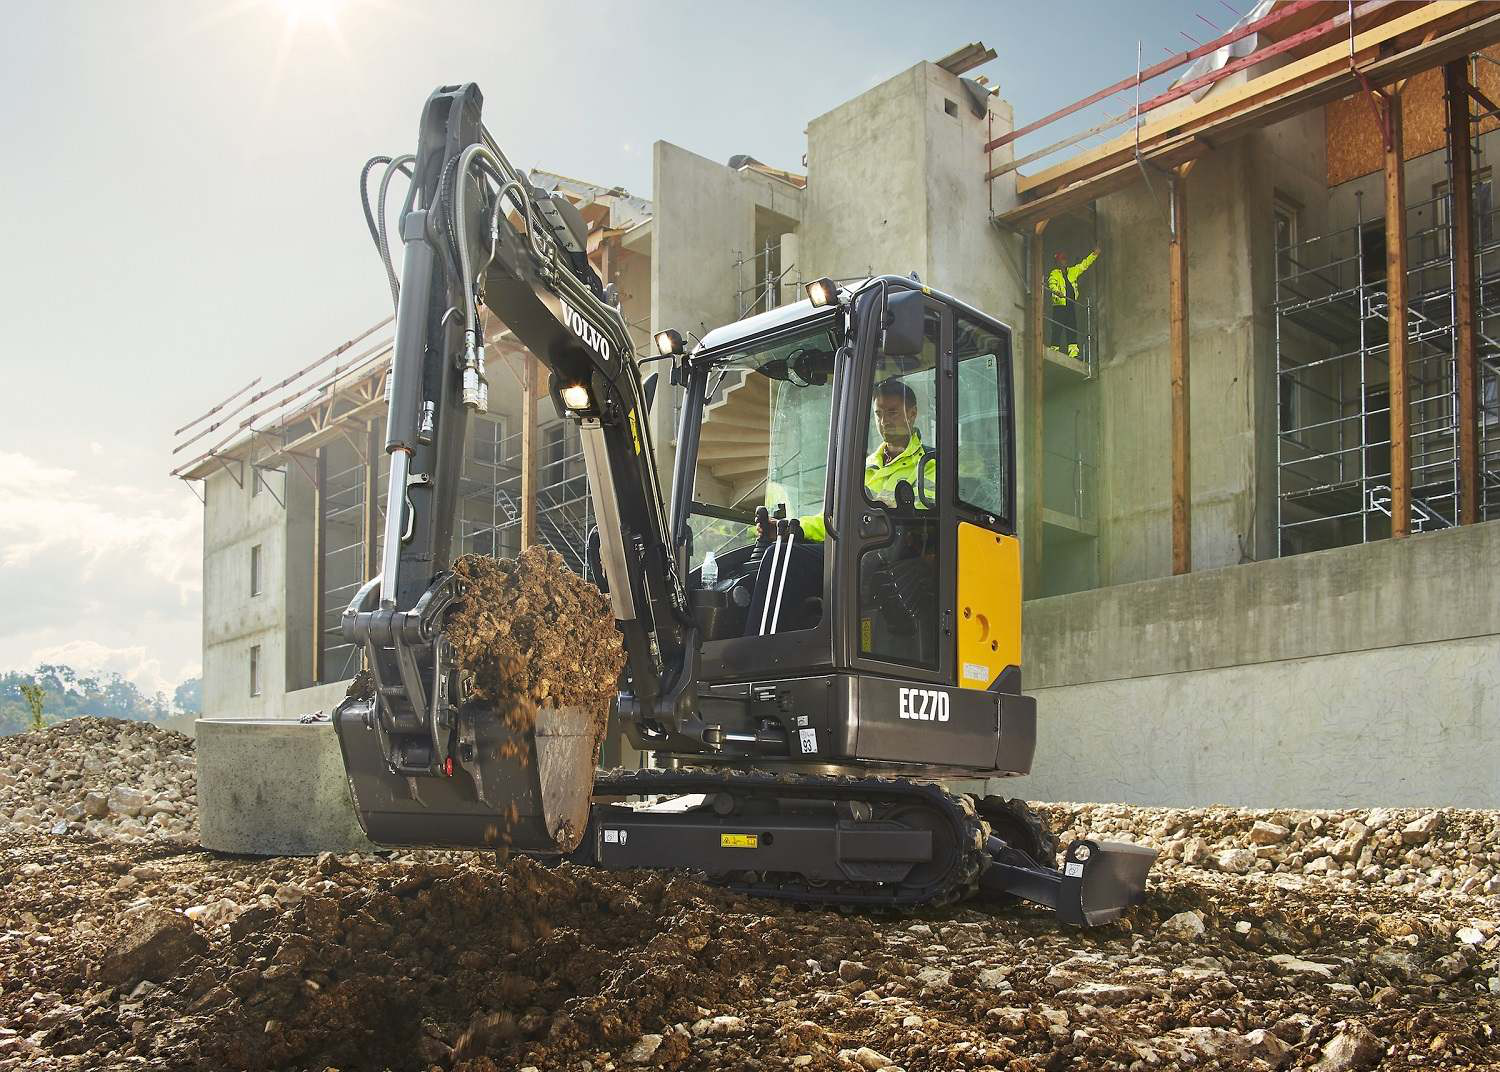 Volvo CE intros EC27D excavator: Short-swing size with more